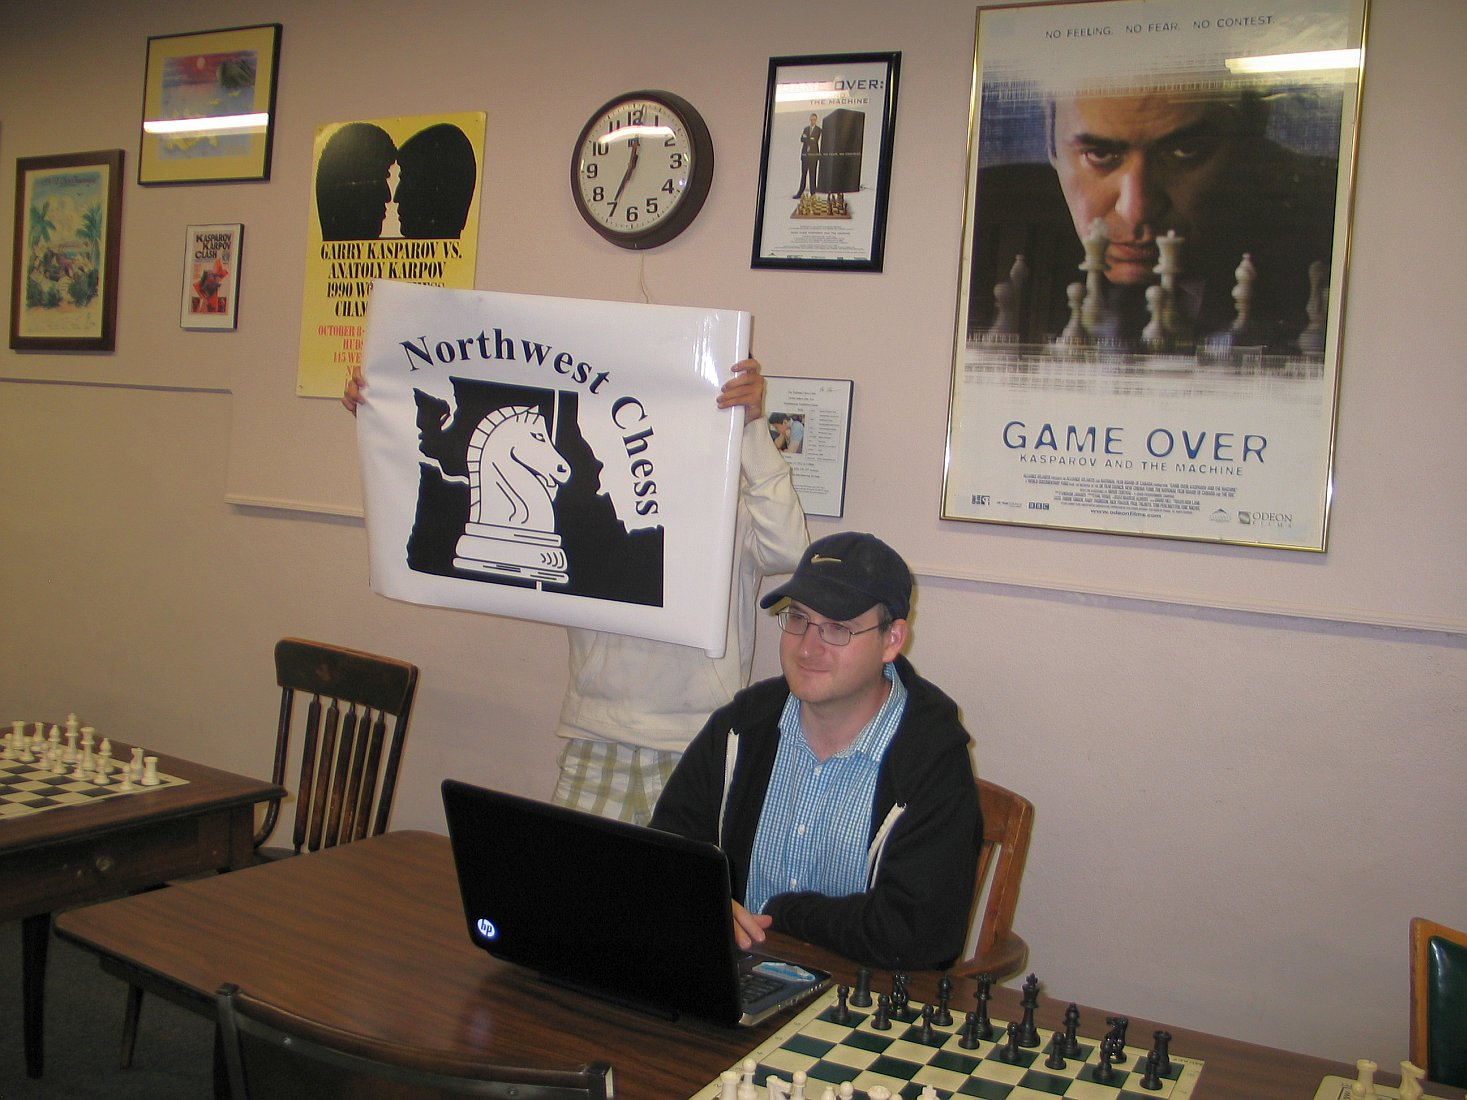 IM Ray Kaufman and the NORTHWEST CHESS banner at Portland Chess Club for May 16 BLITZ event.